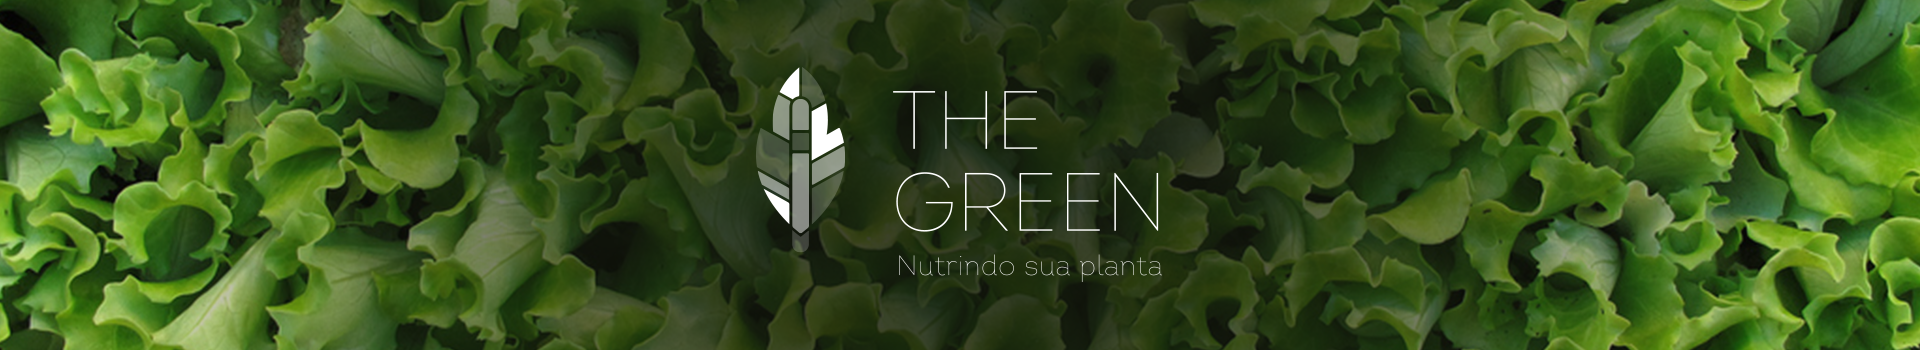 The Green nutrindo sua planta